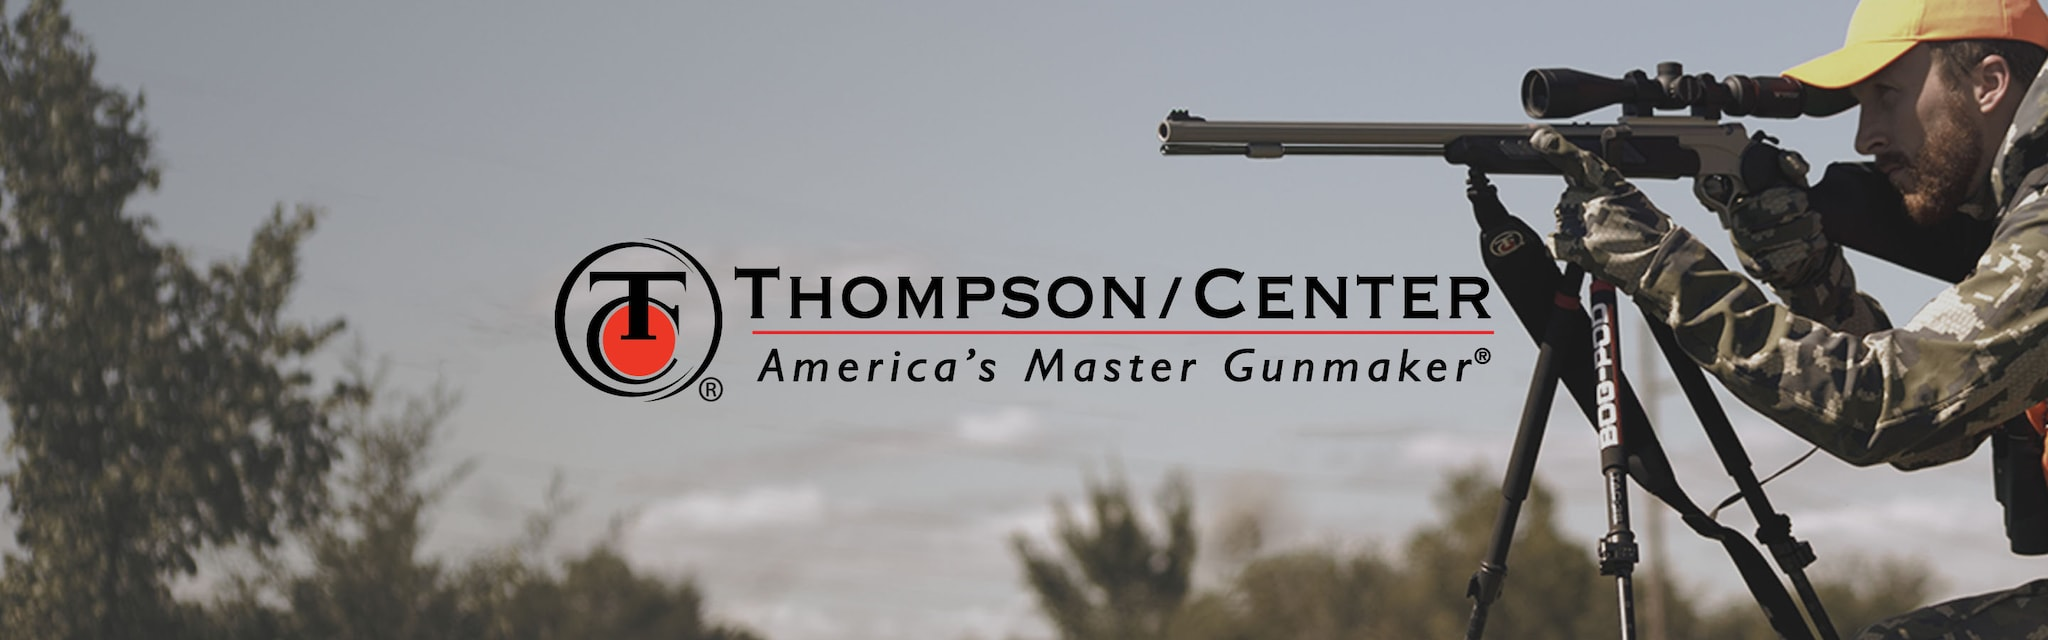 Thompson Center Arms brand image